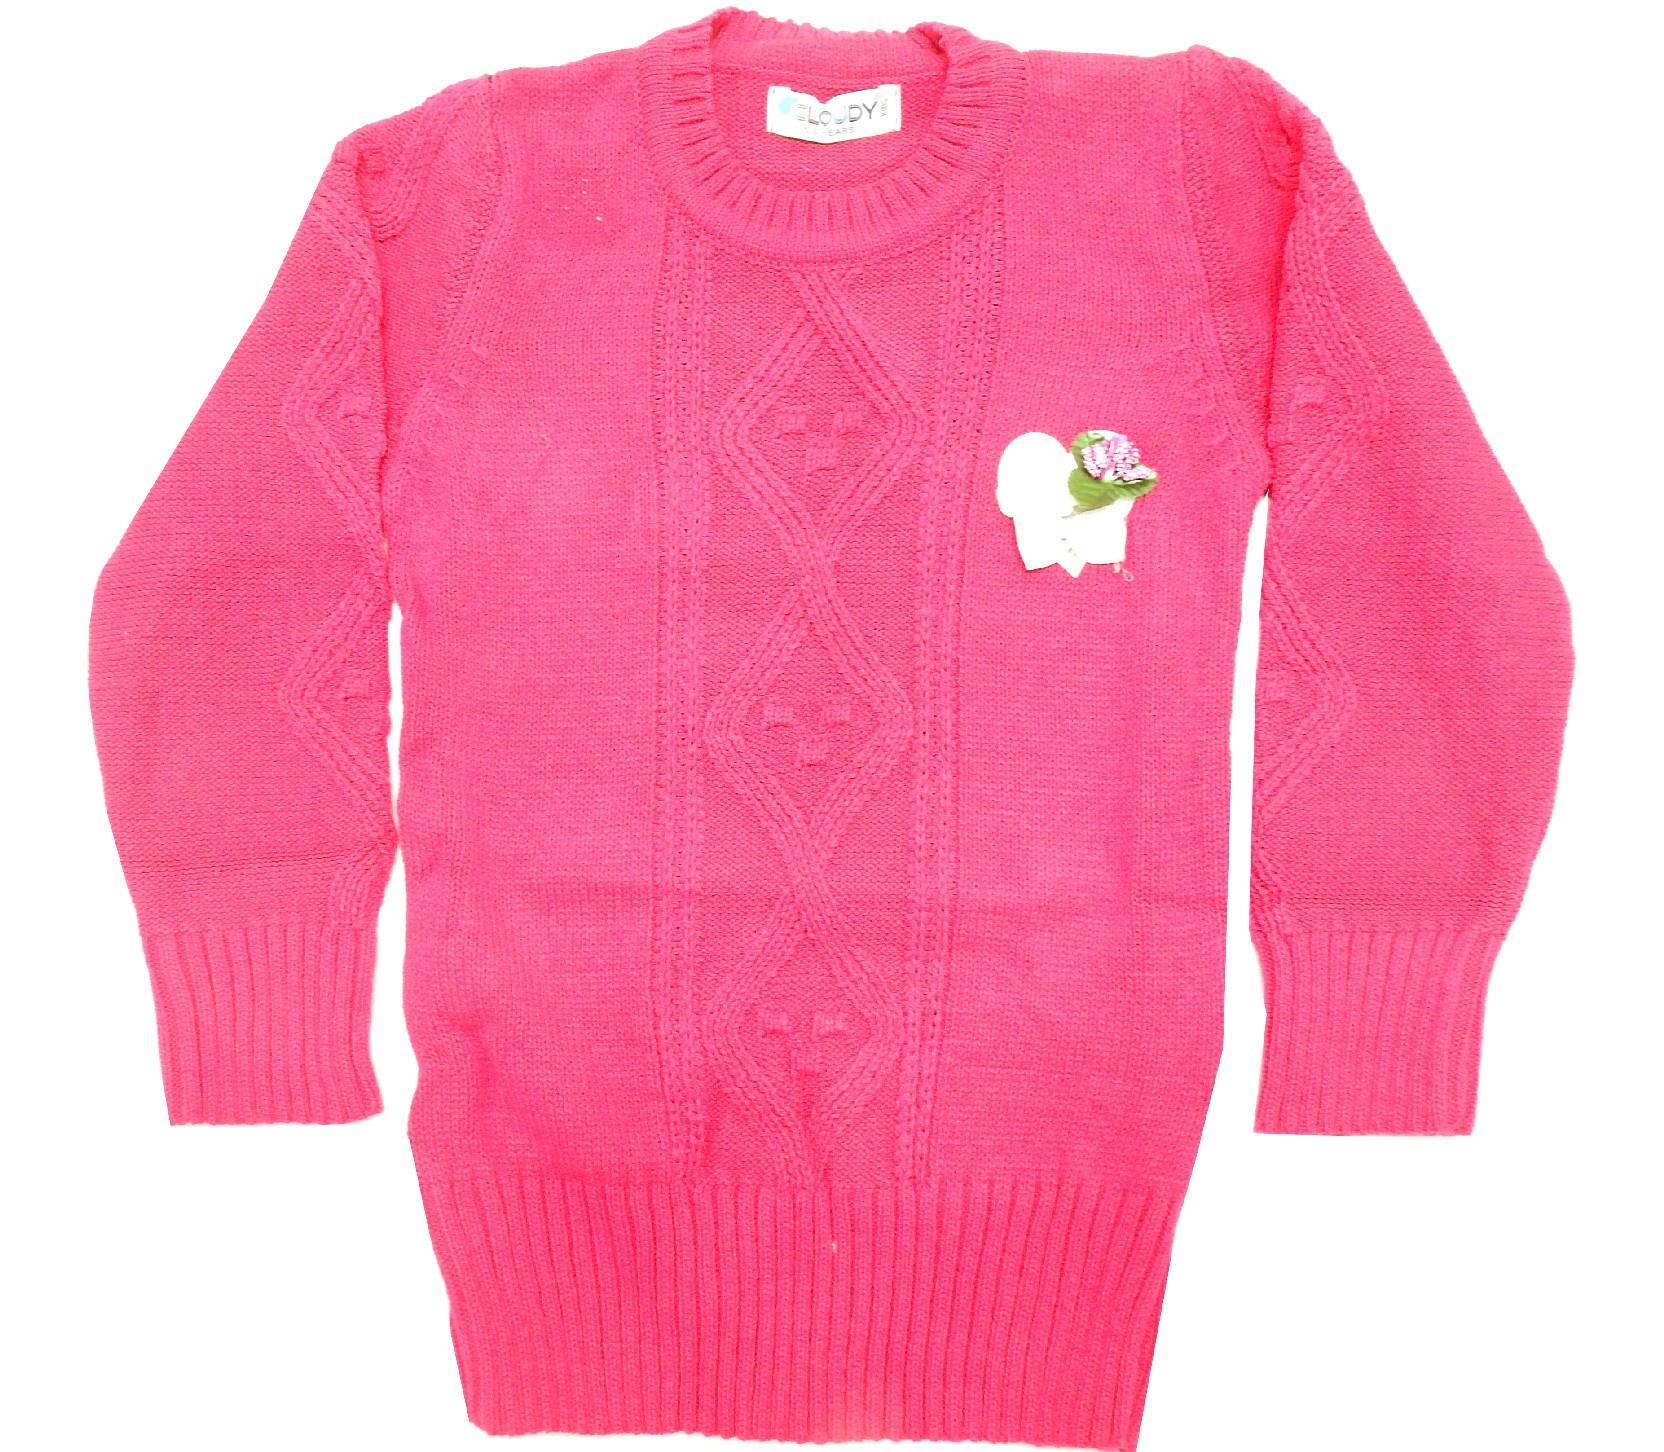 WHOLESALE DECORATIVE FLOWER APPLIQUE KNITTED DESIGN TUNIC SWEATER FOR GIRL (5-7-9 AGE)